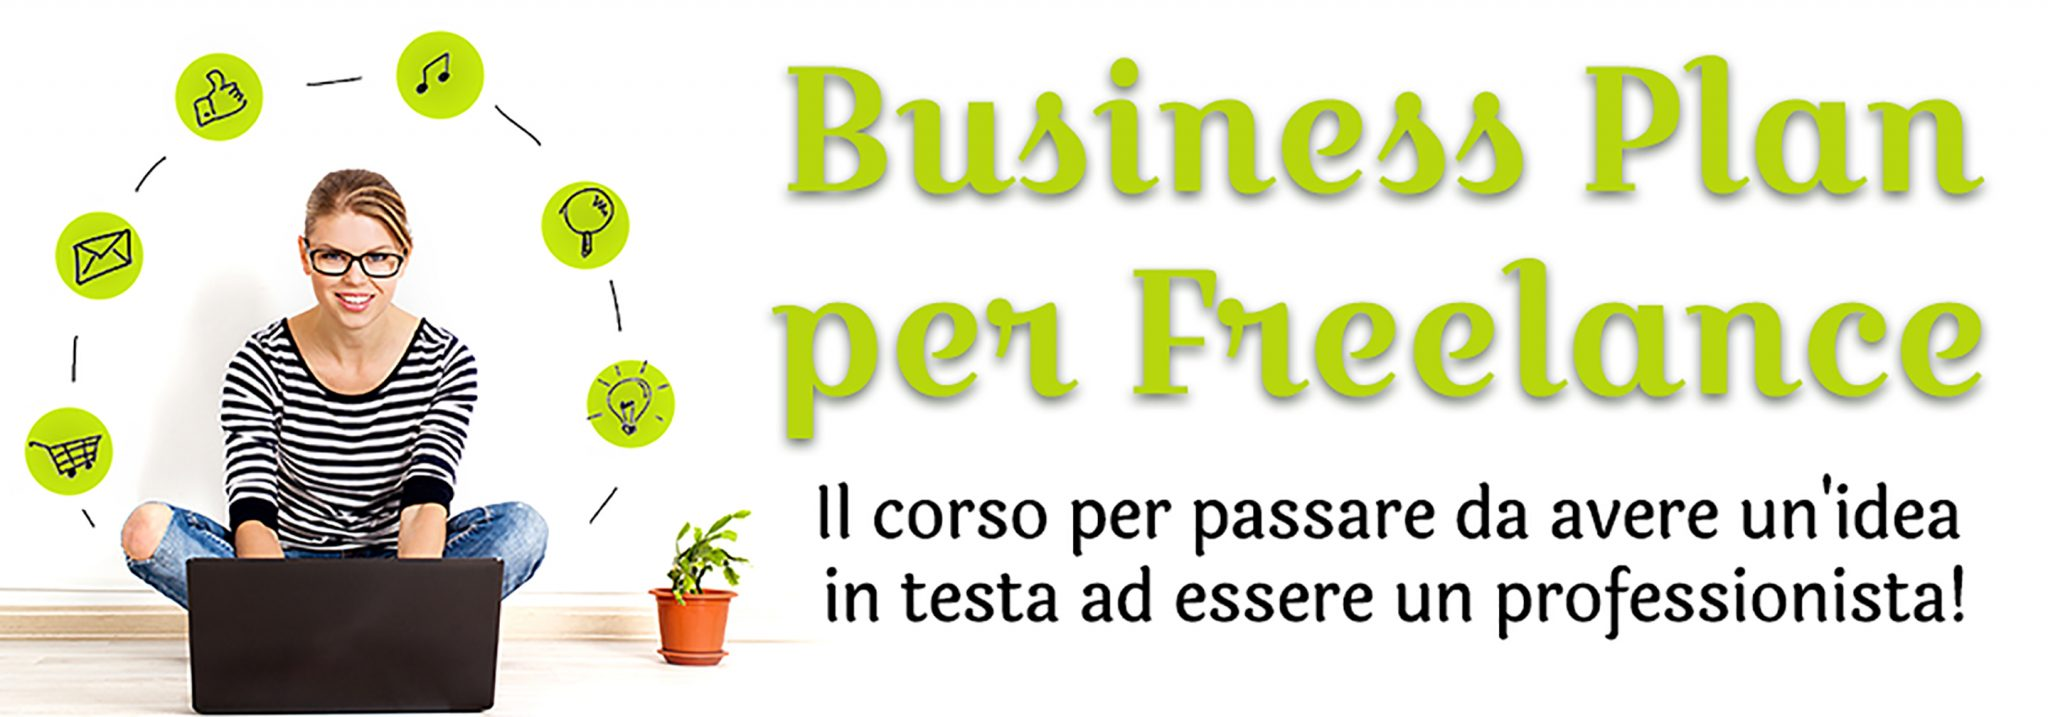 Business Plan per freelance